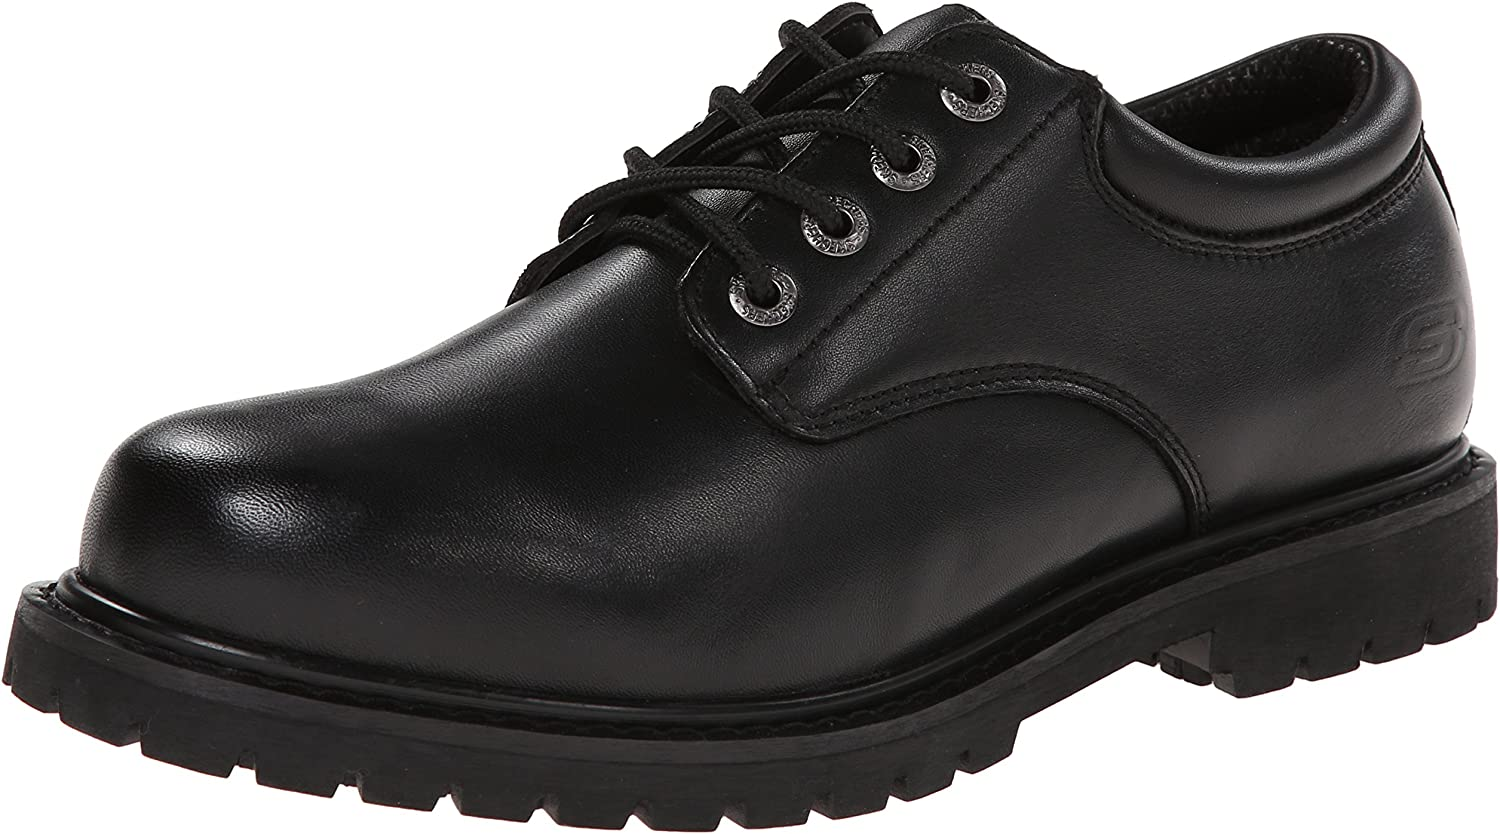 Skechers for Work Men's Cottonwood Elks Slip Resistant Shoe